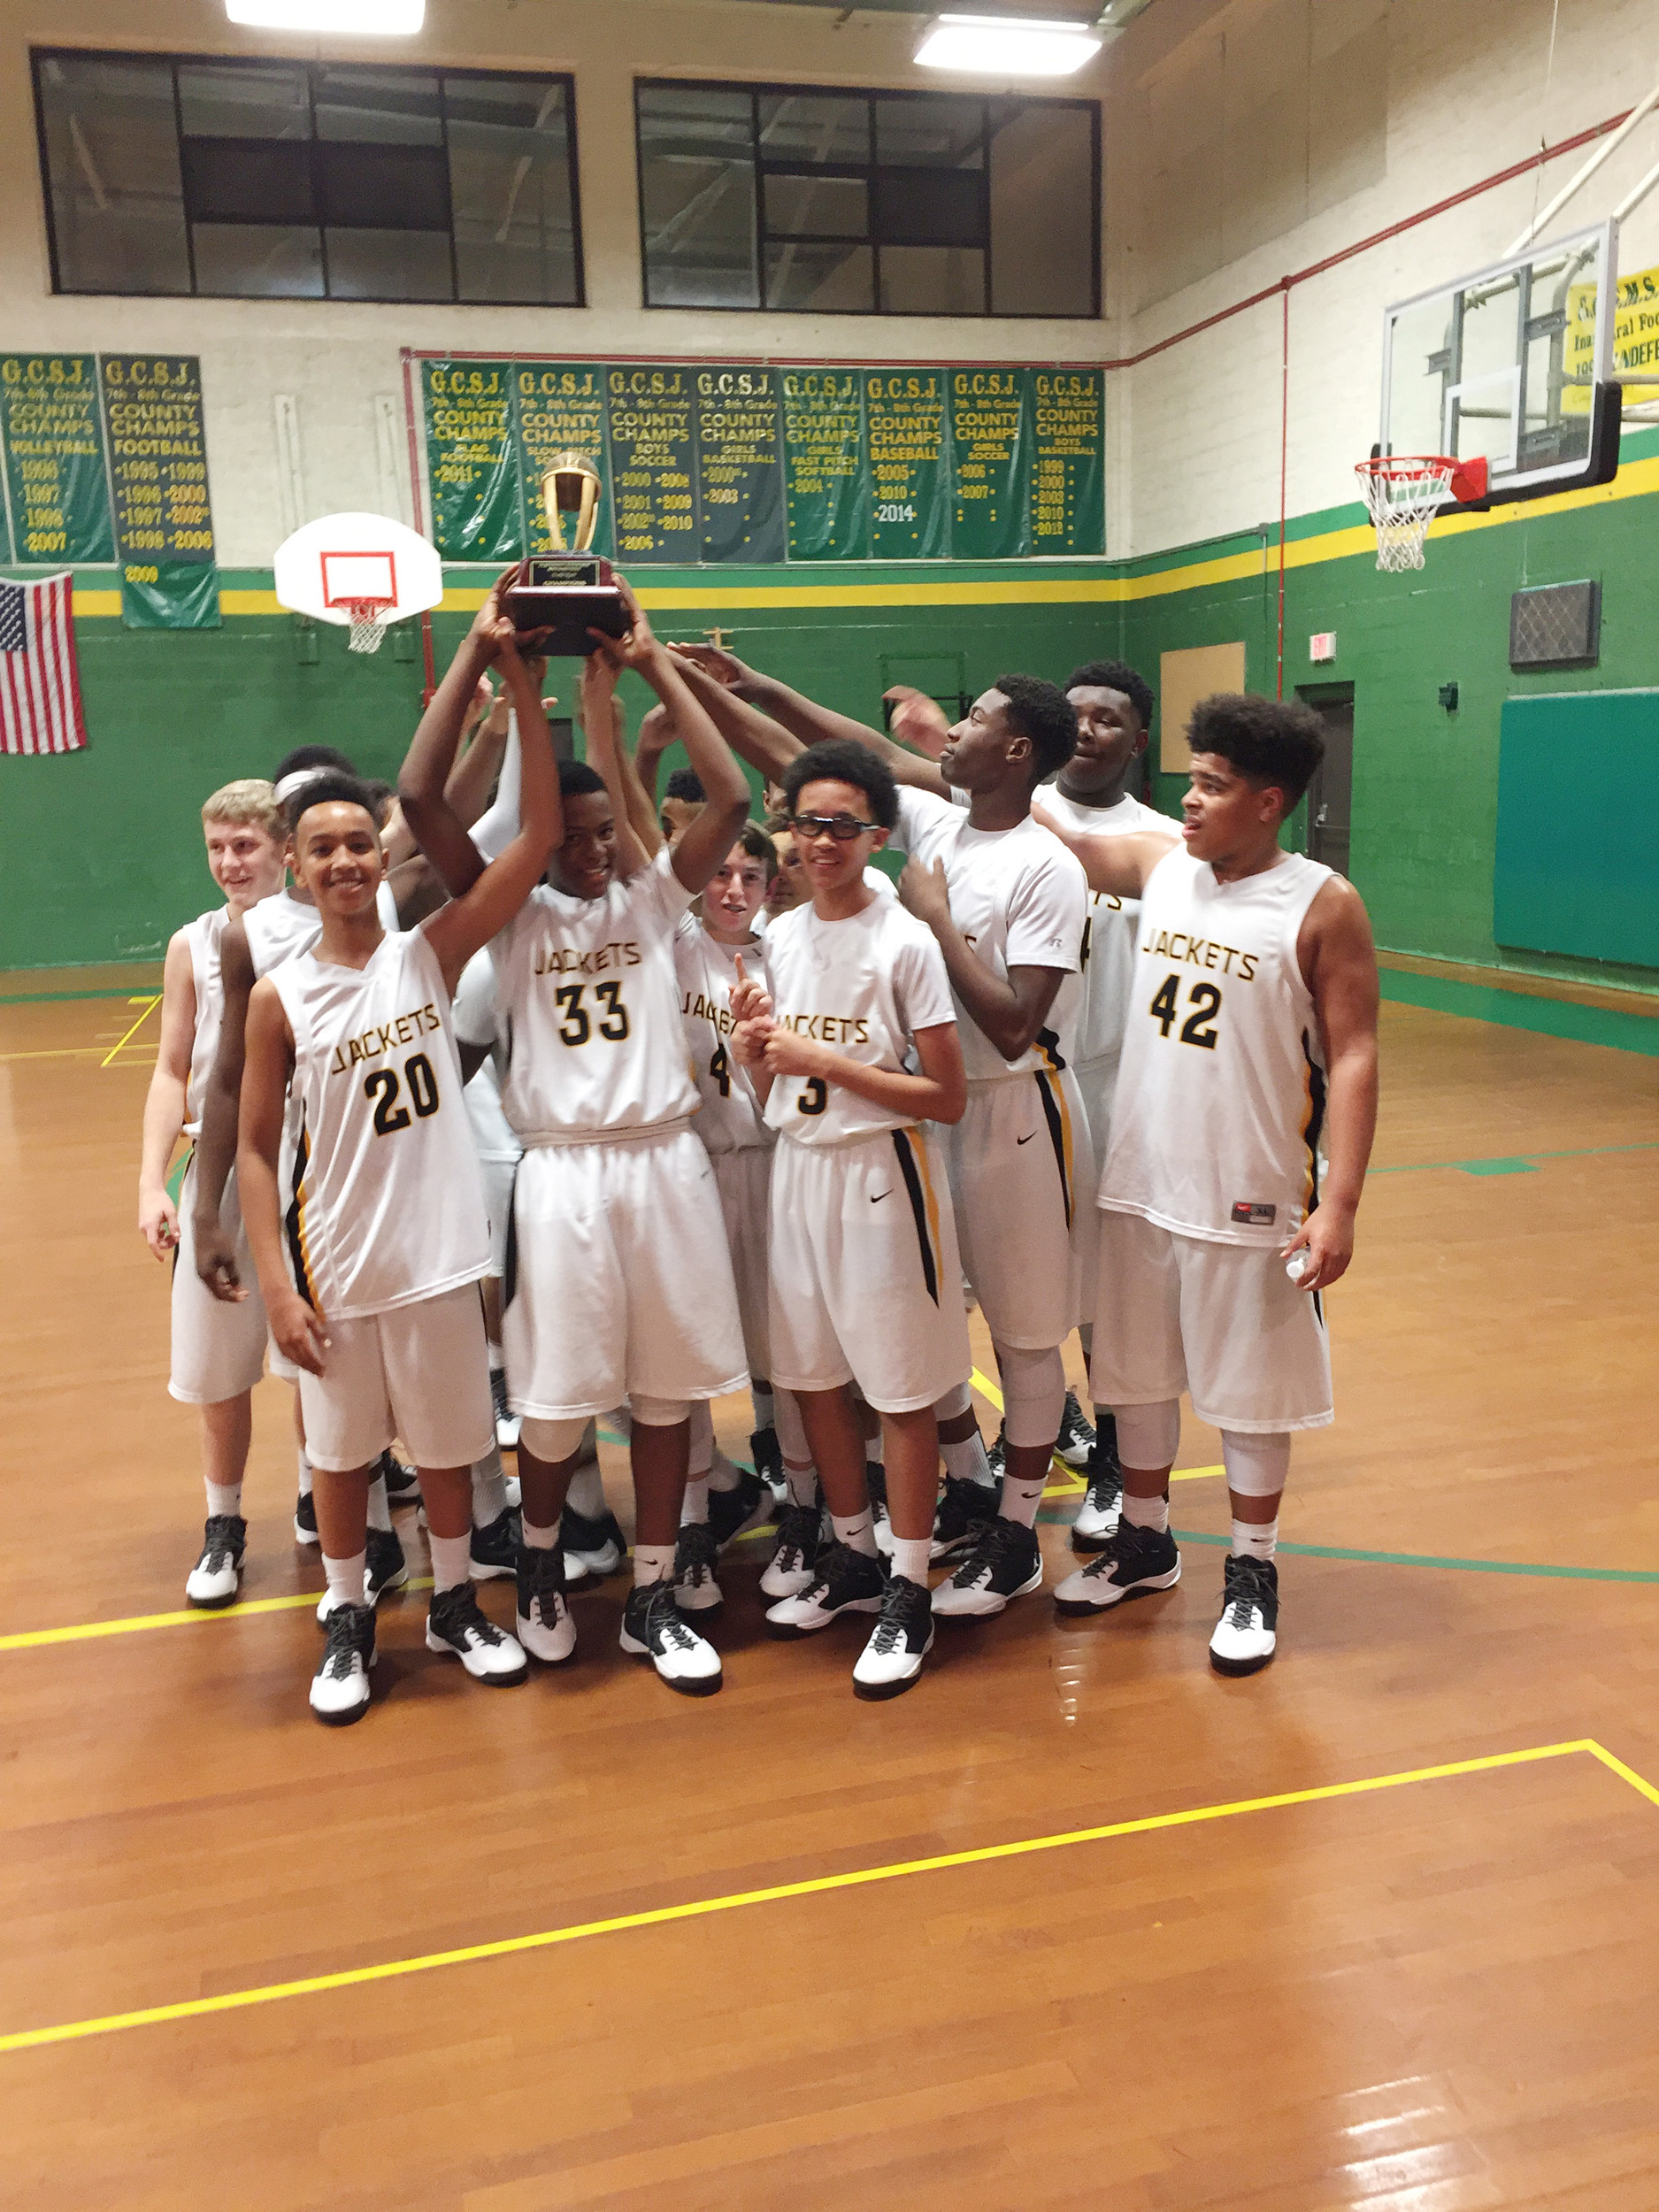 Bottom: Oakleaf Junior High's boys basketball team won 47-30 over Bradford Middle School for the Clay County Championship. The Yellow Jackets, coached by John Conley, finished with a 14-0 record.